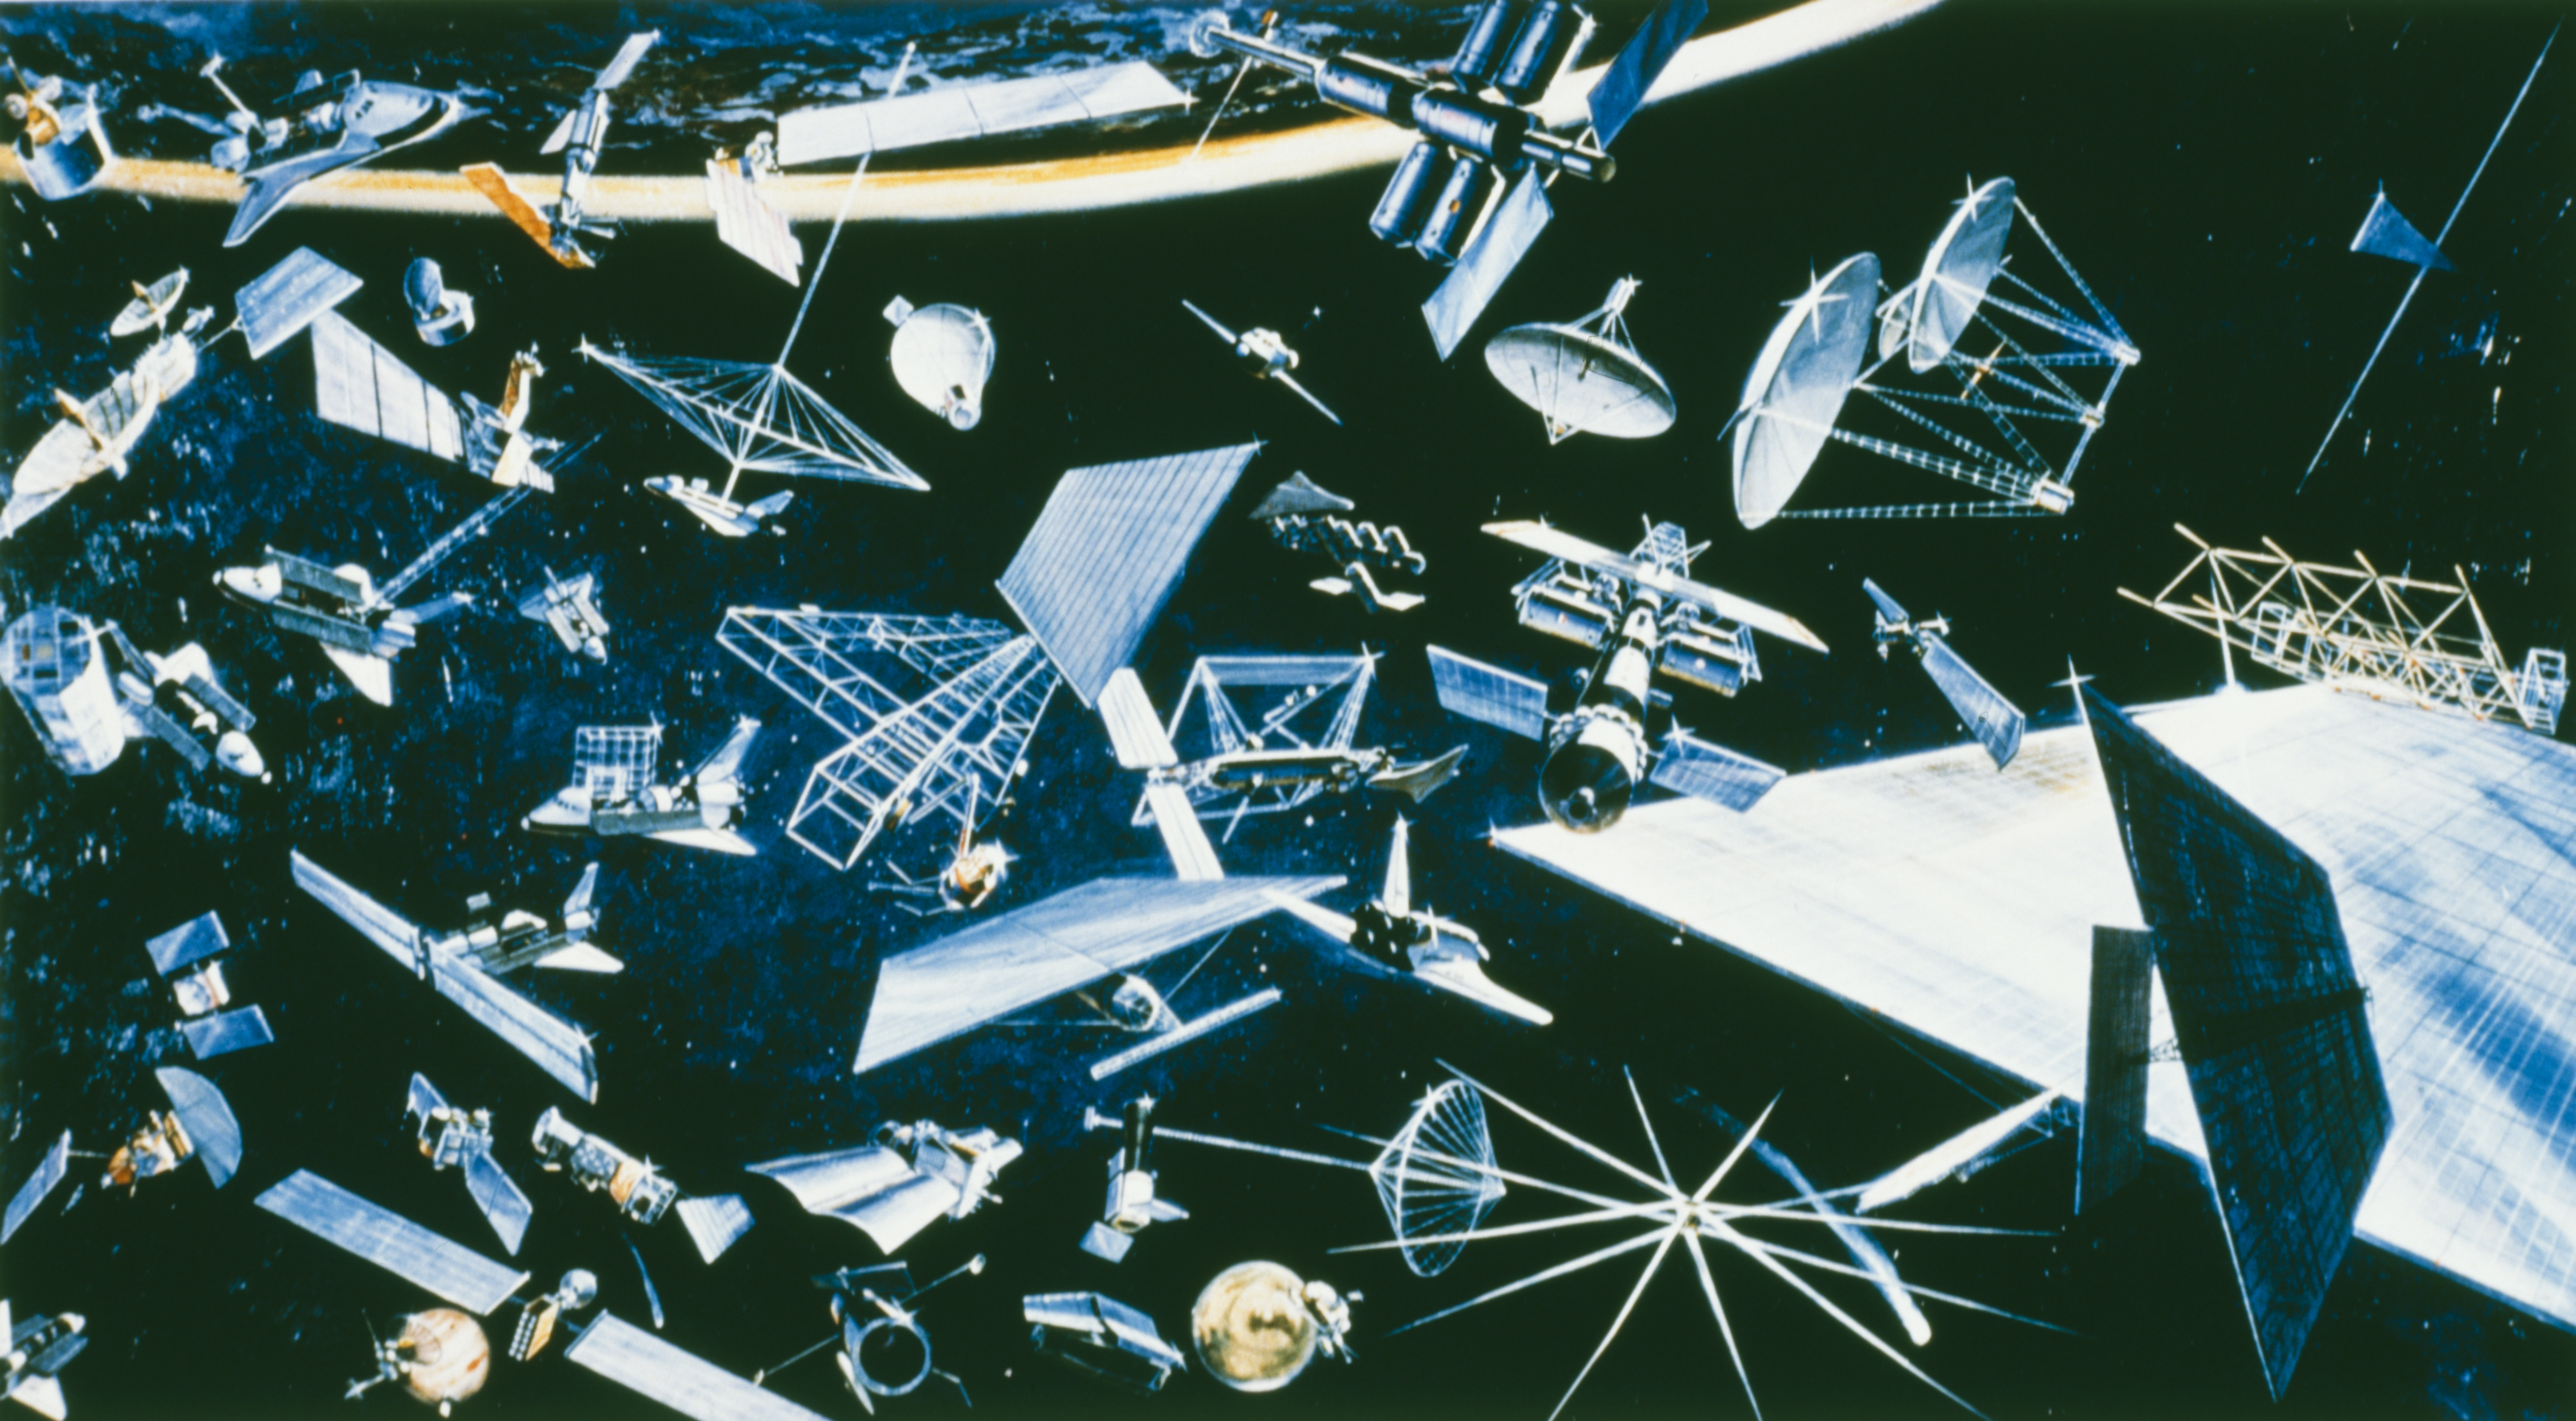 Artist's impression depicting a wide variety of existing and future satellites for communication, surveying Earth resources, and mapping them, circa 1978.